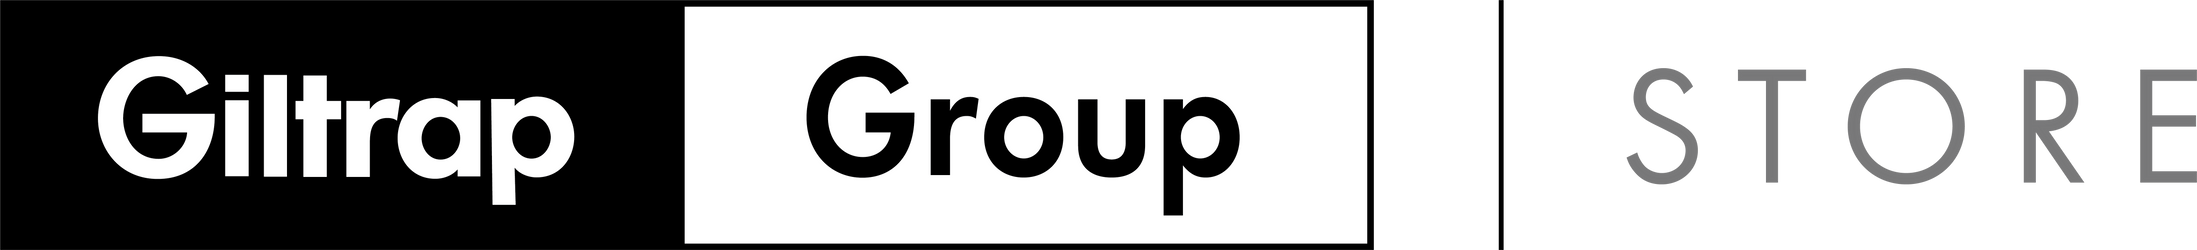 Giltrap Group Store